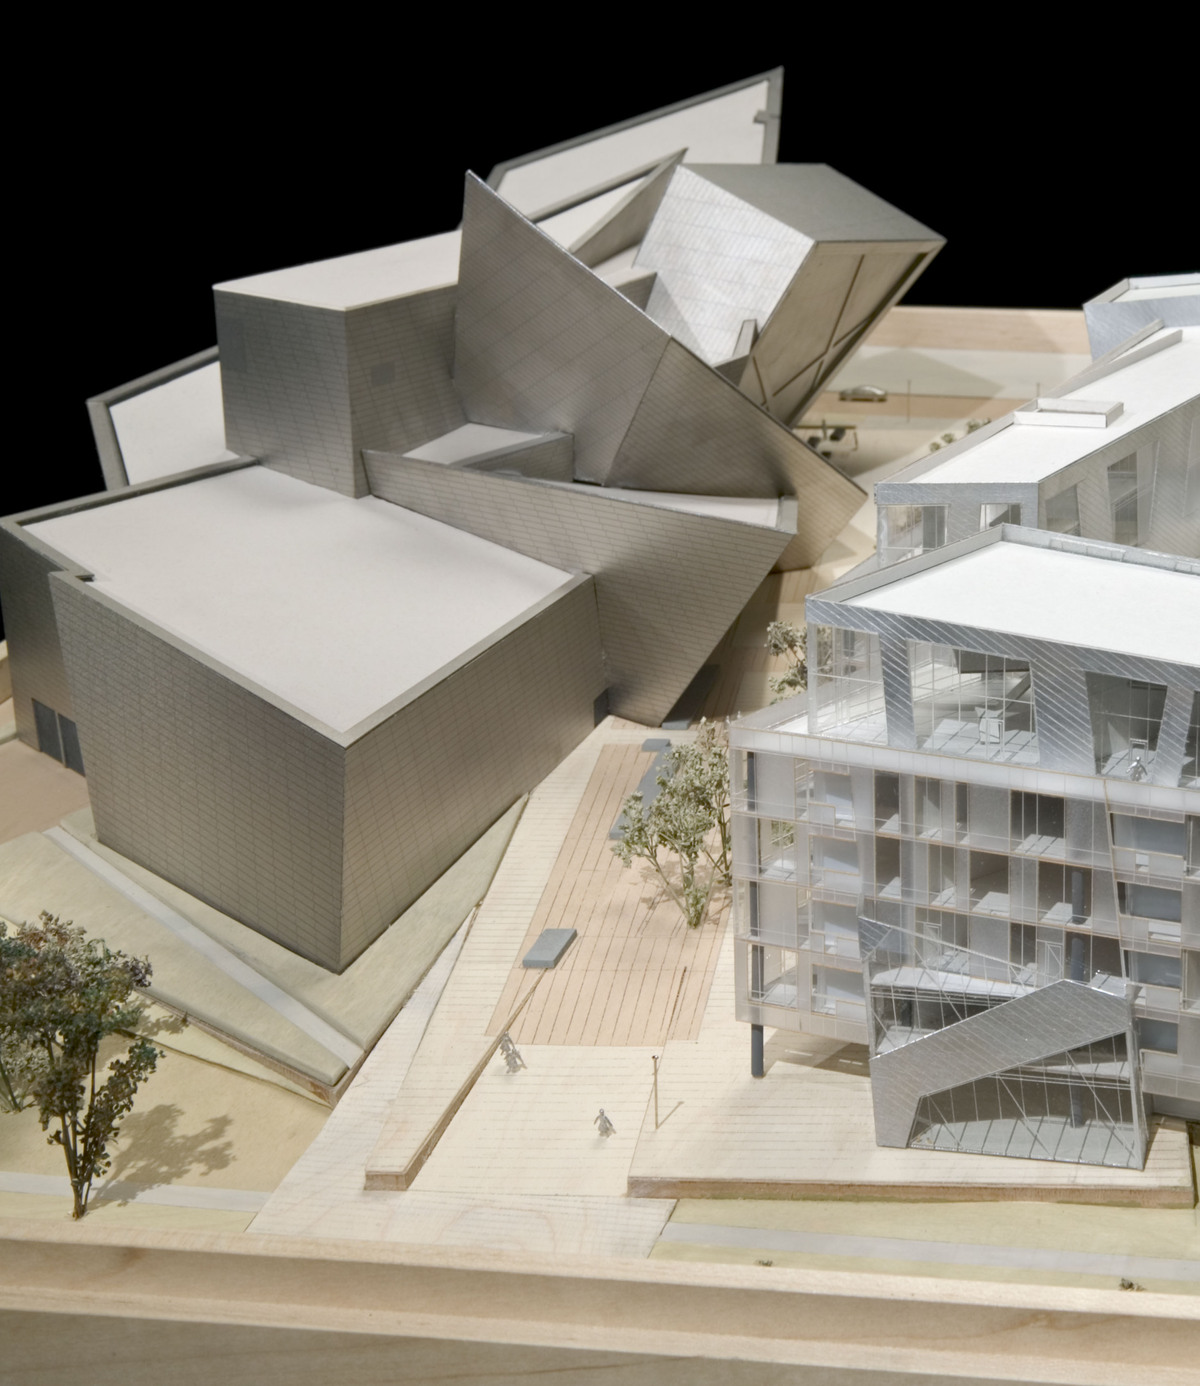 All about architecture for Denver art museum concept